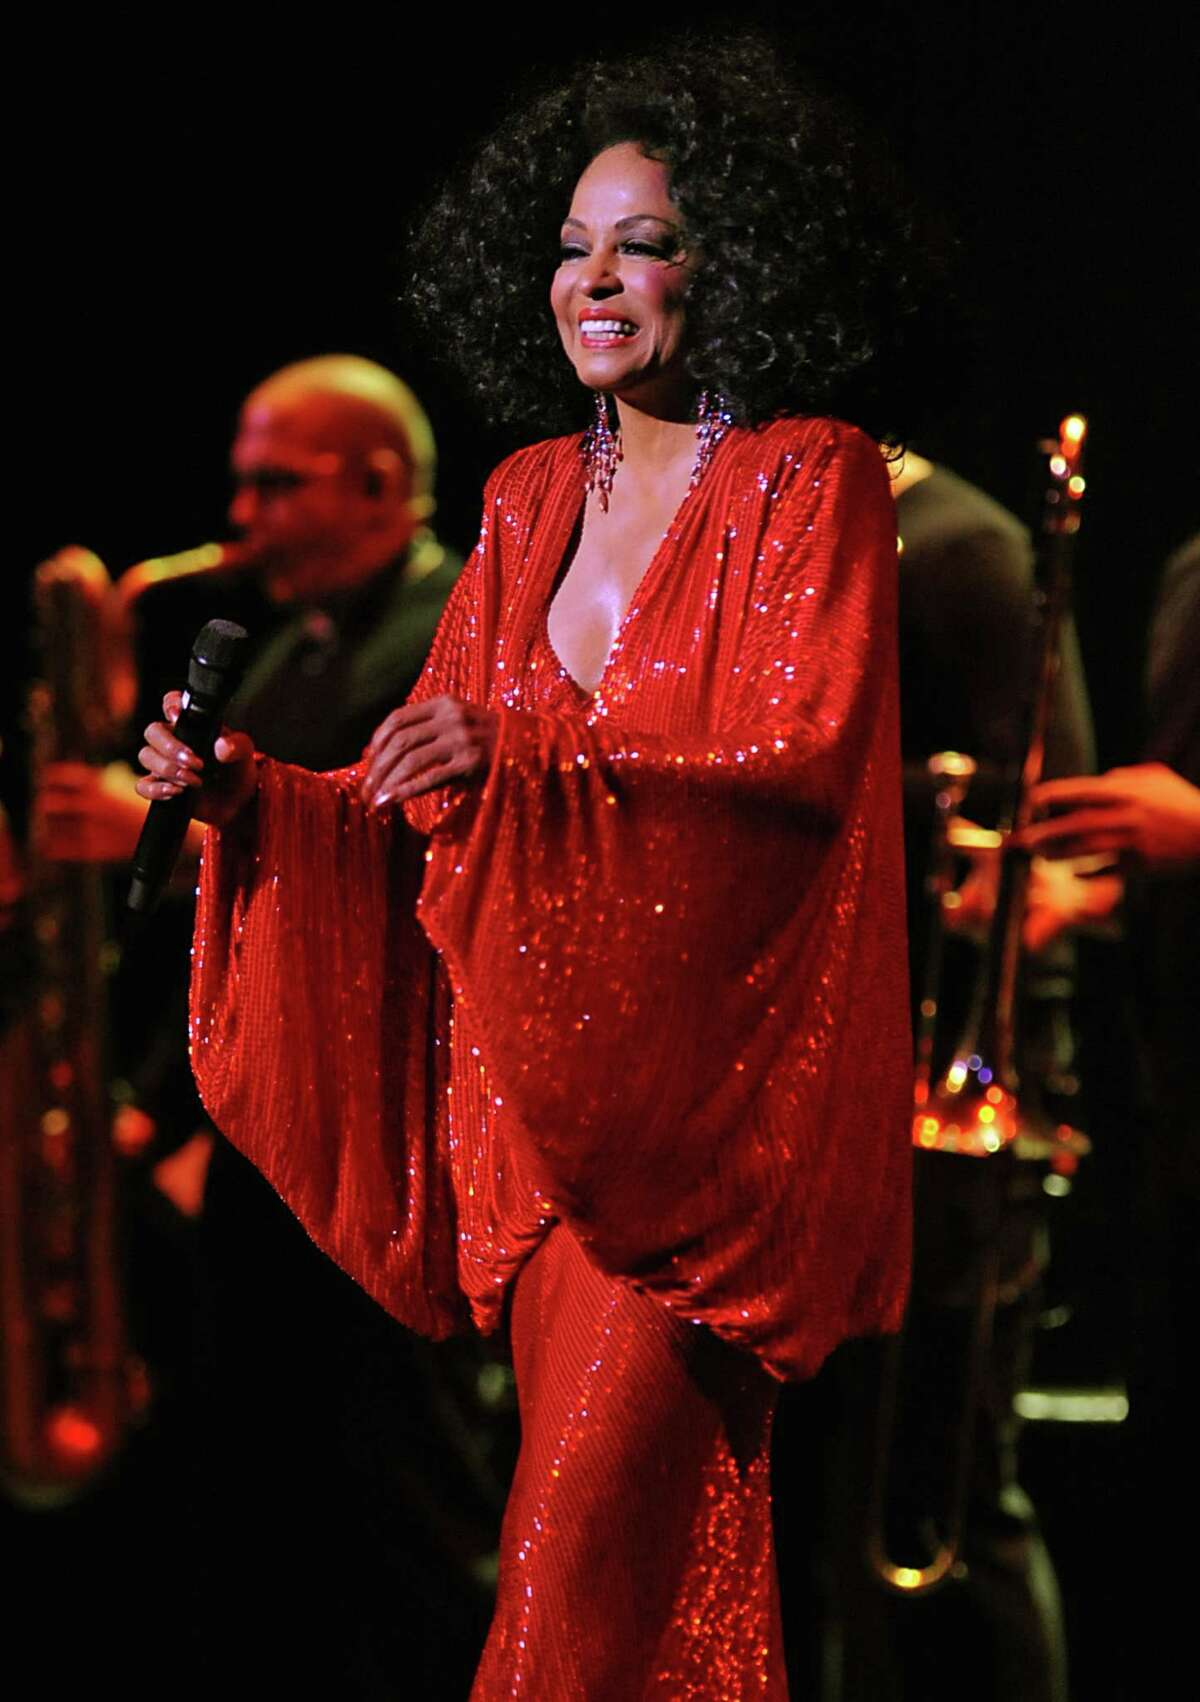 Pop legend Diana Ross sings during a concert at the Palace Theatre in Albany, NY on September 15, 2010. (Lori Van Buren / Times Union)